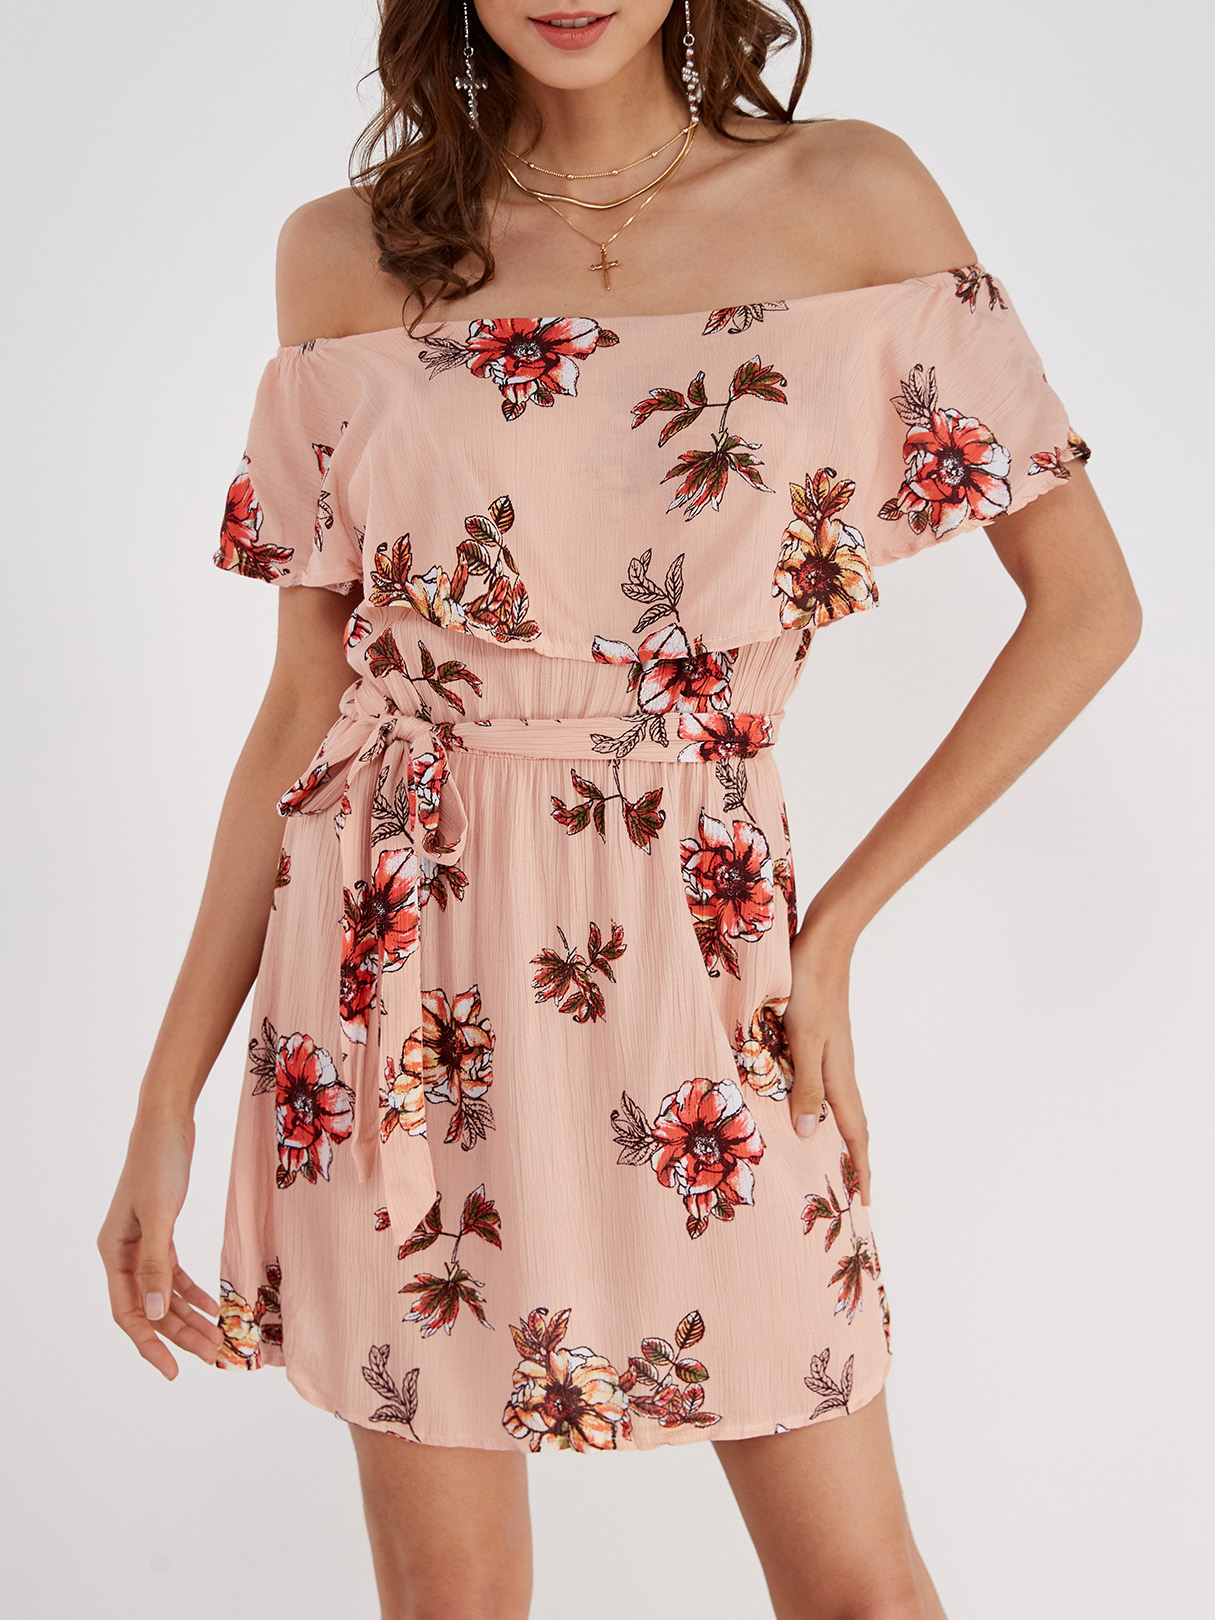 Off-The-Shoulder Ruffle Design Random Floral Print Dress cute off the shoulder floral print ruffled dress for women